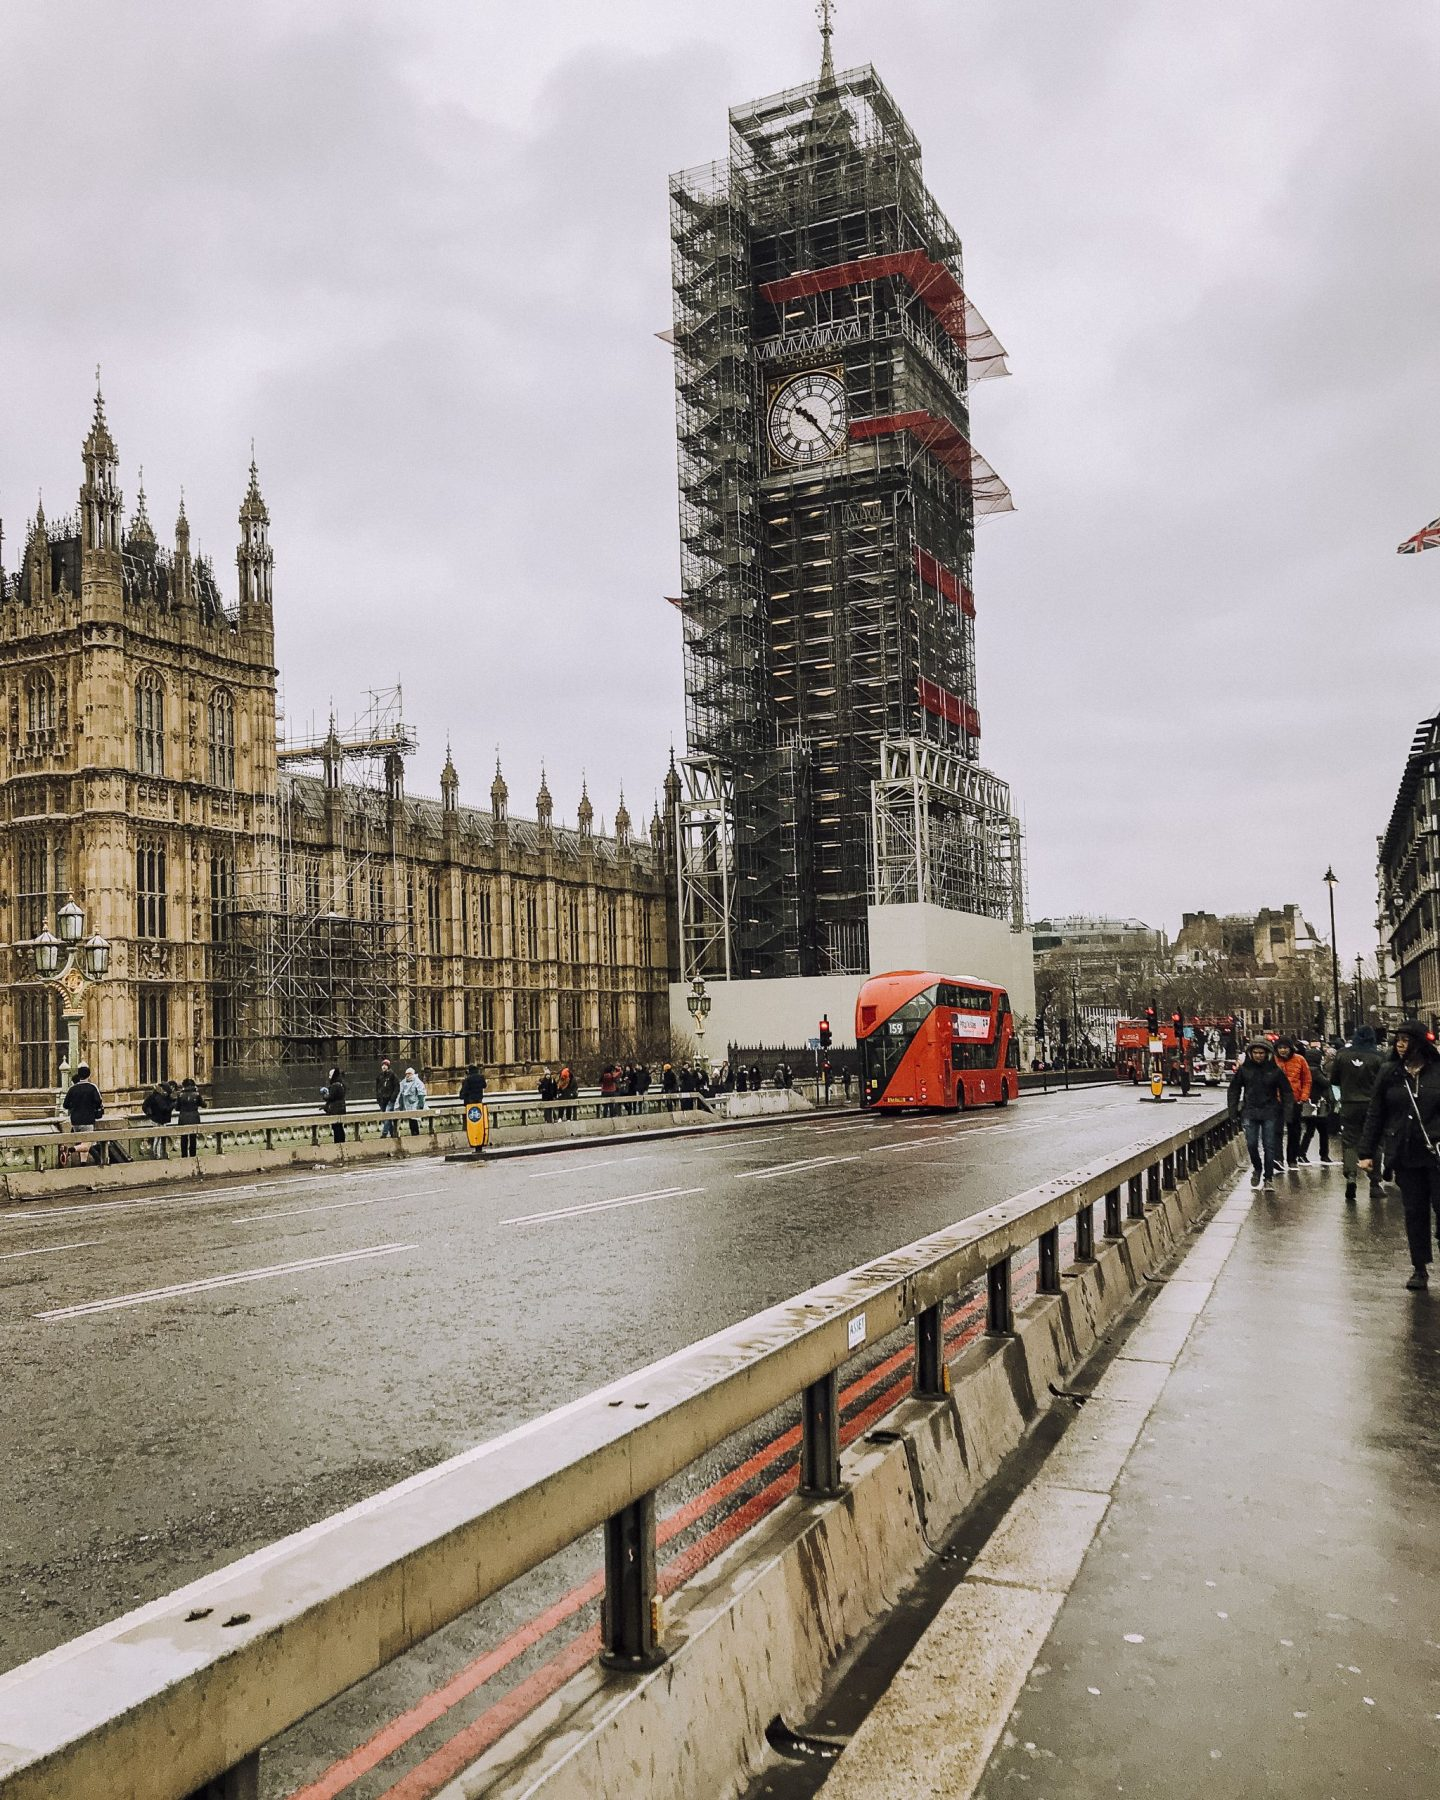 Big Ben in London covered in scaffolding